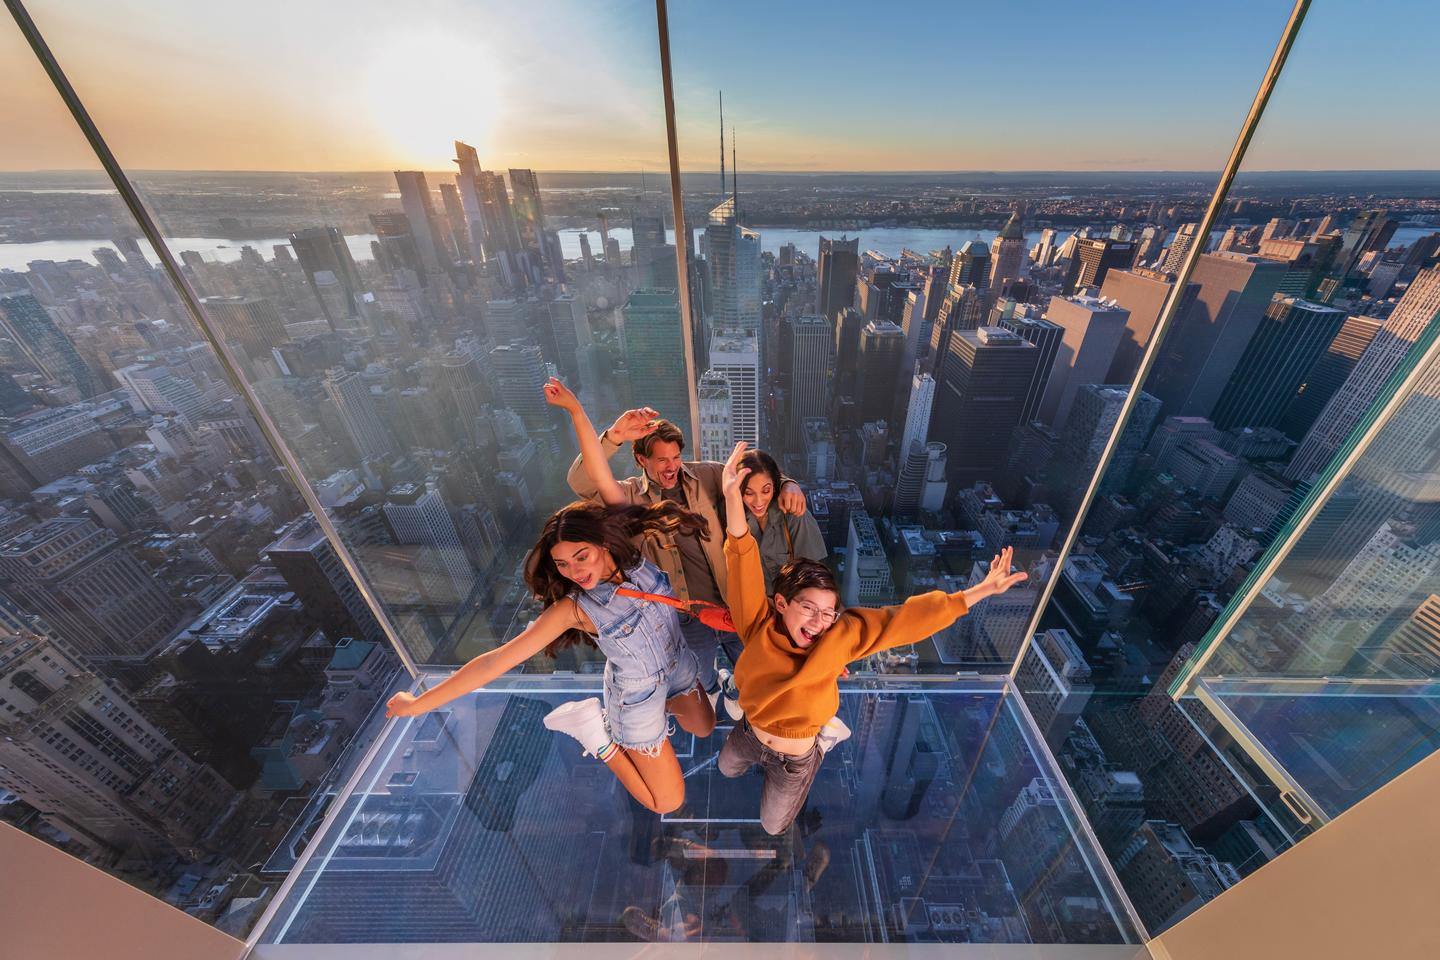 Summit One Vanderbilt's Levitation attraction consists of glass boxes jutting out the side of the skyscraper, letting visitors step out of the main building